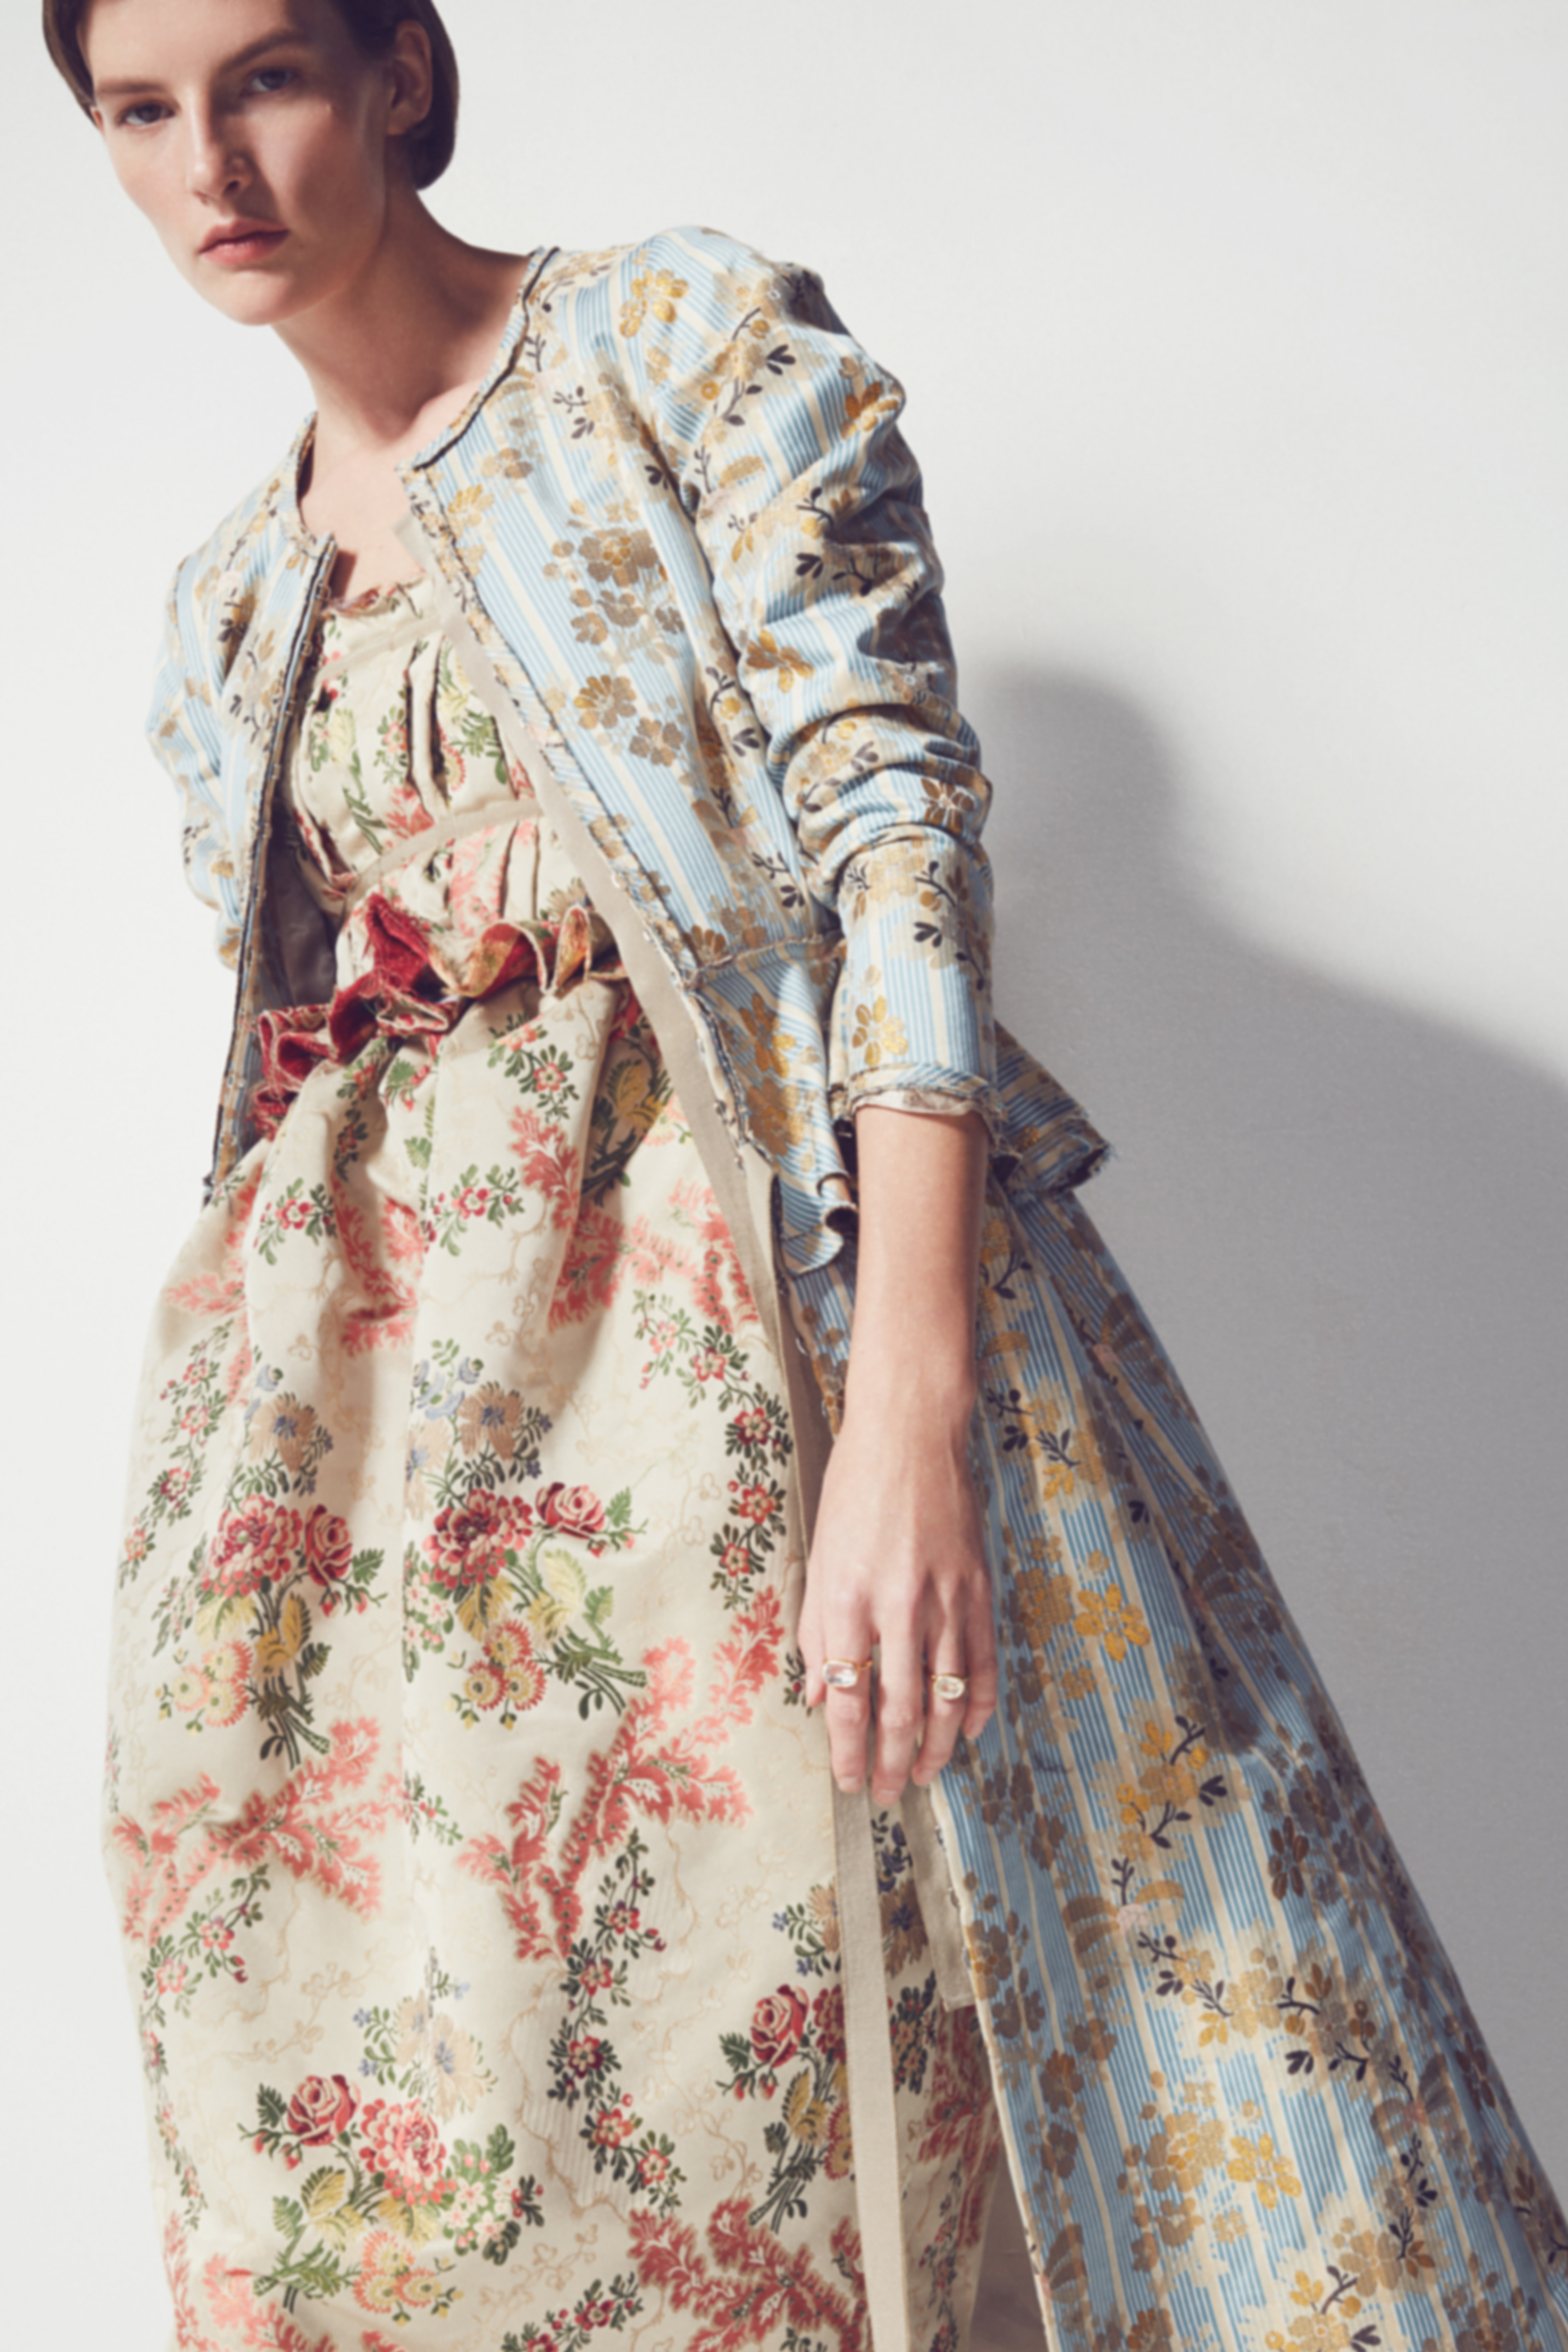 ad768d372b382 What To Wear To A Wedding: Be The Best Dressed Guest | PORTER